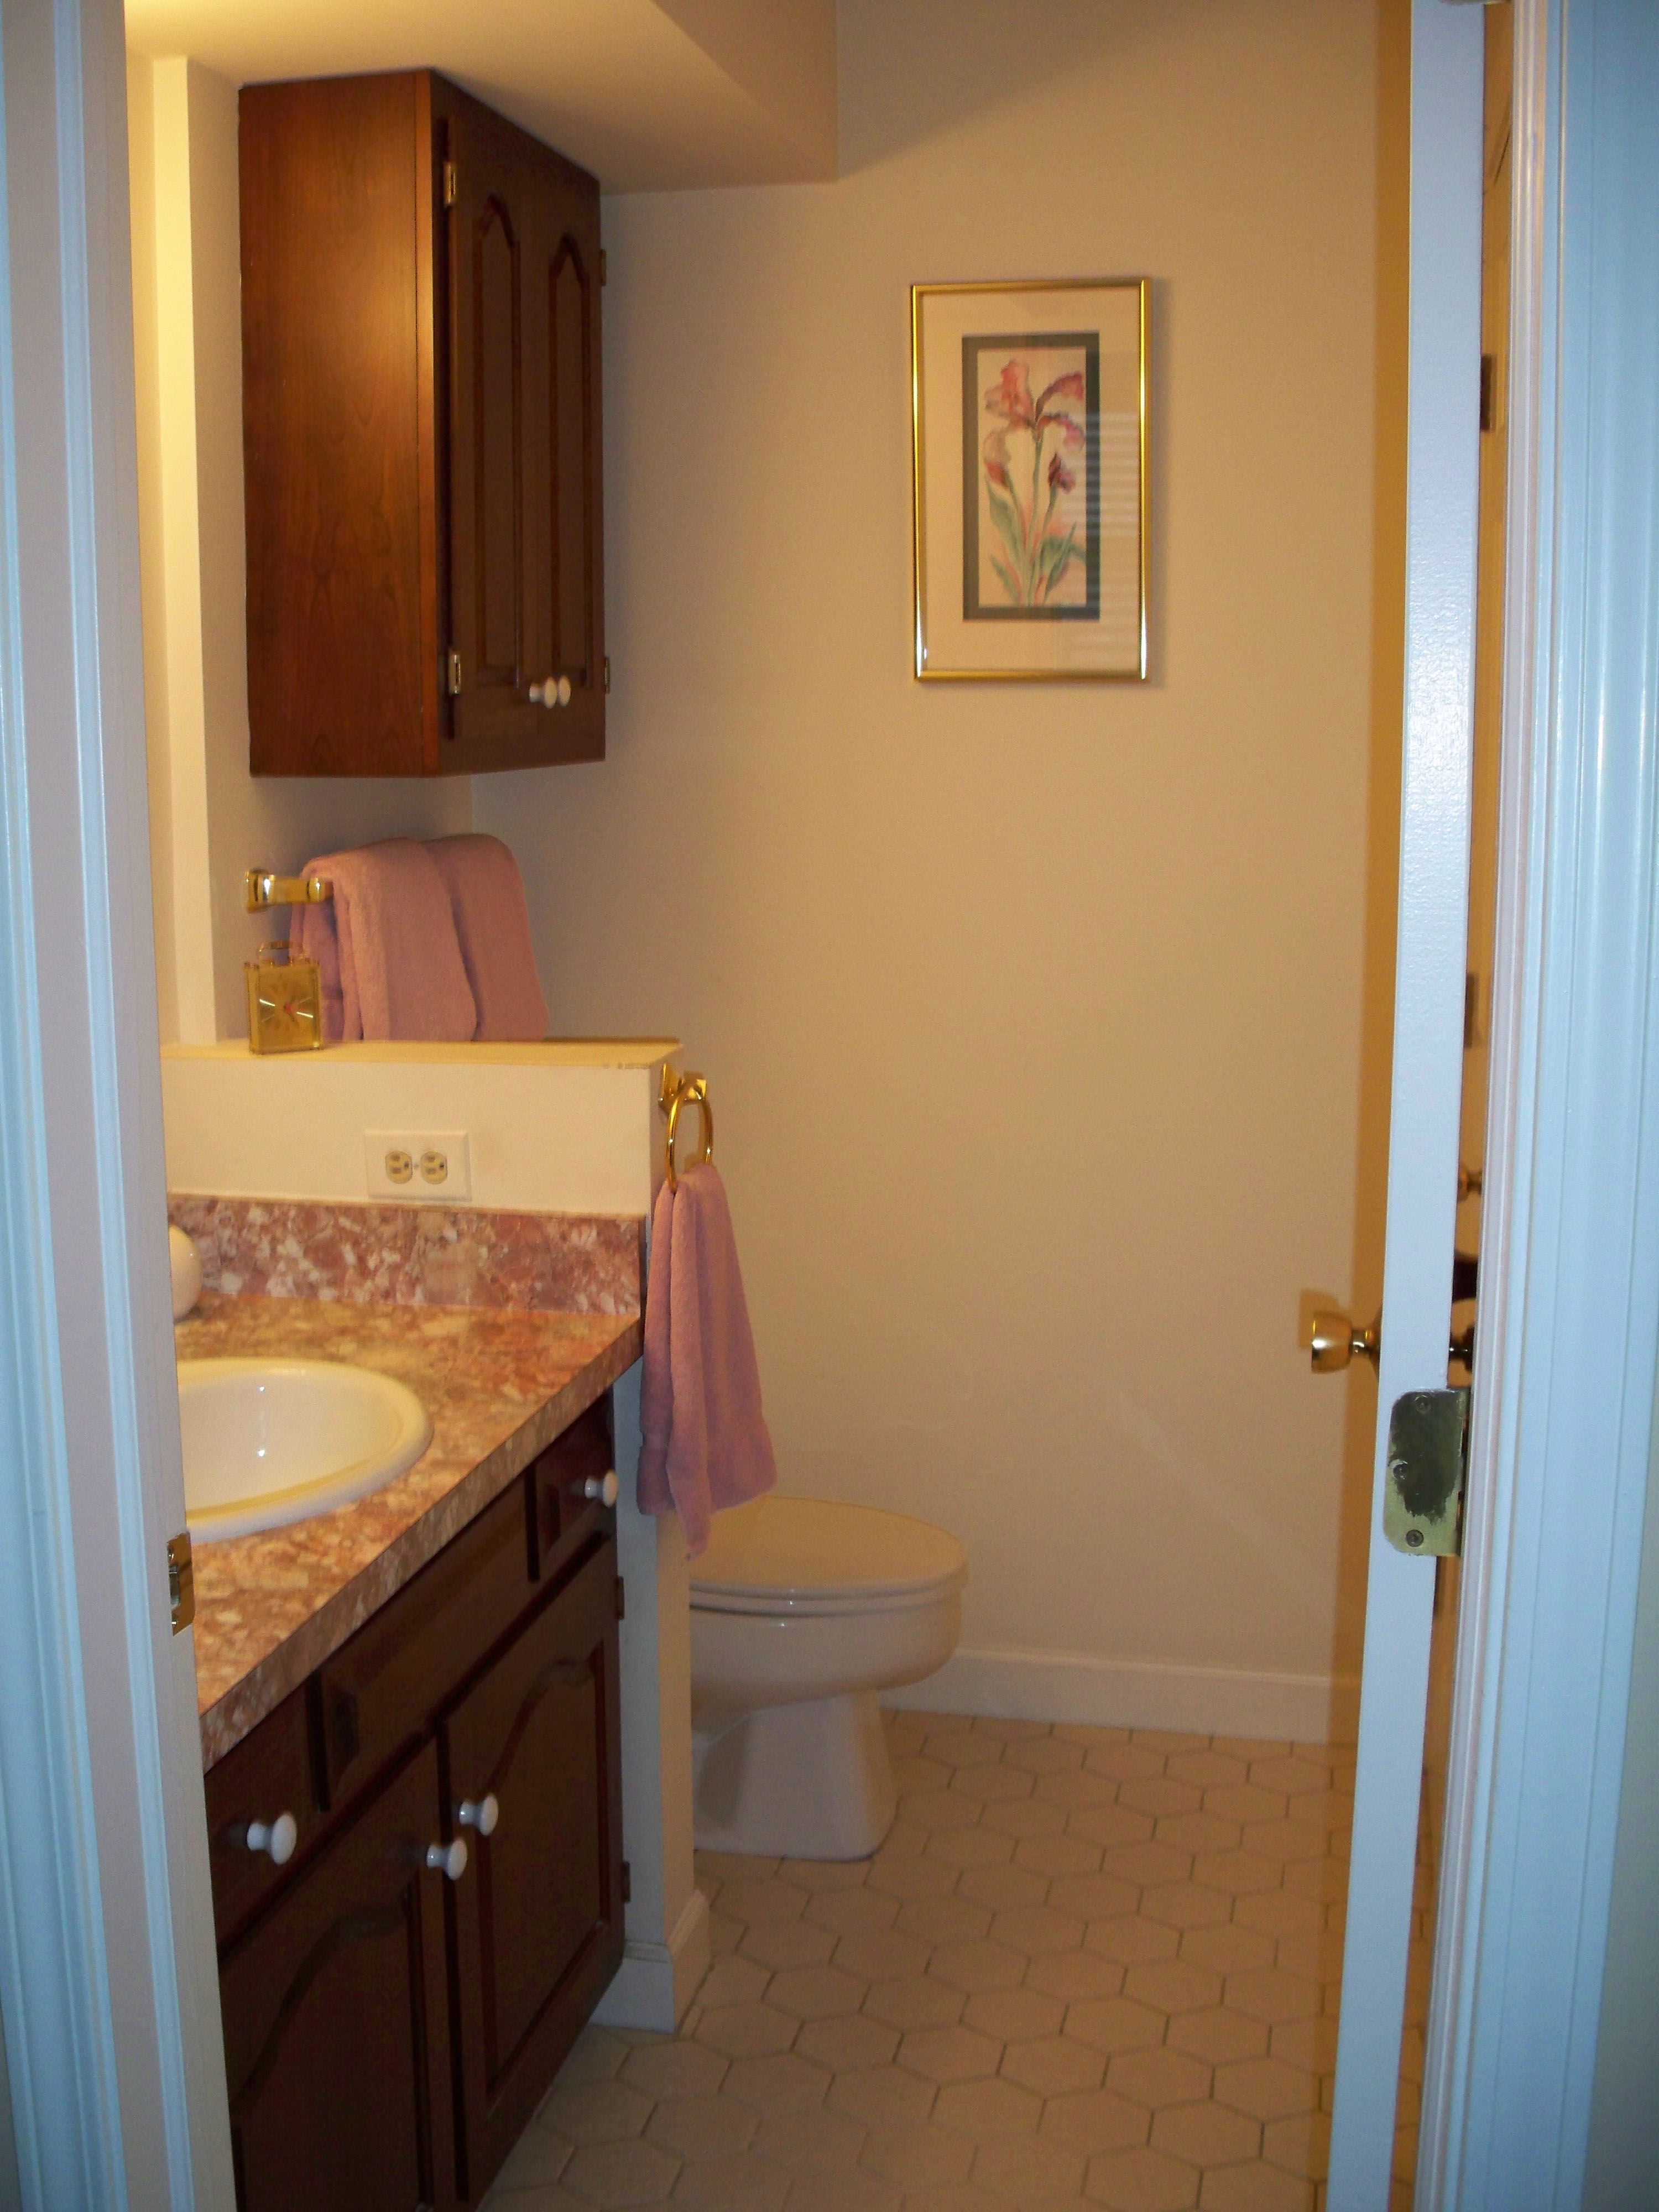 Small Bathroom Remodeling Ideas | Small Bathroom Ideas 3000x4000 Home Design  Small Bathroom Ideas .